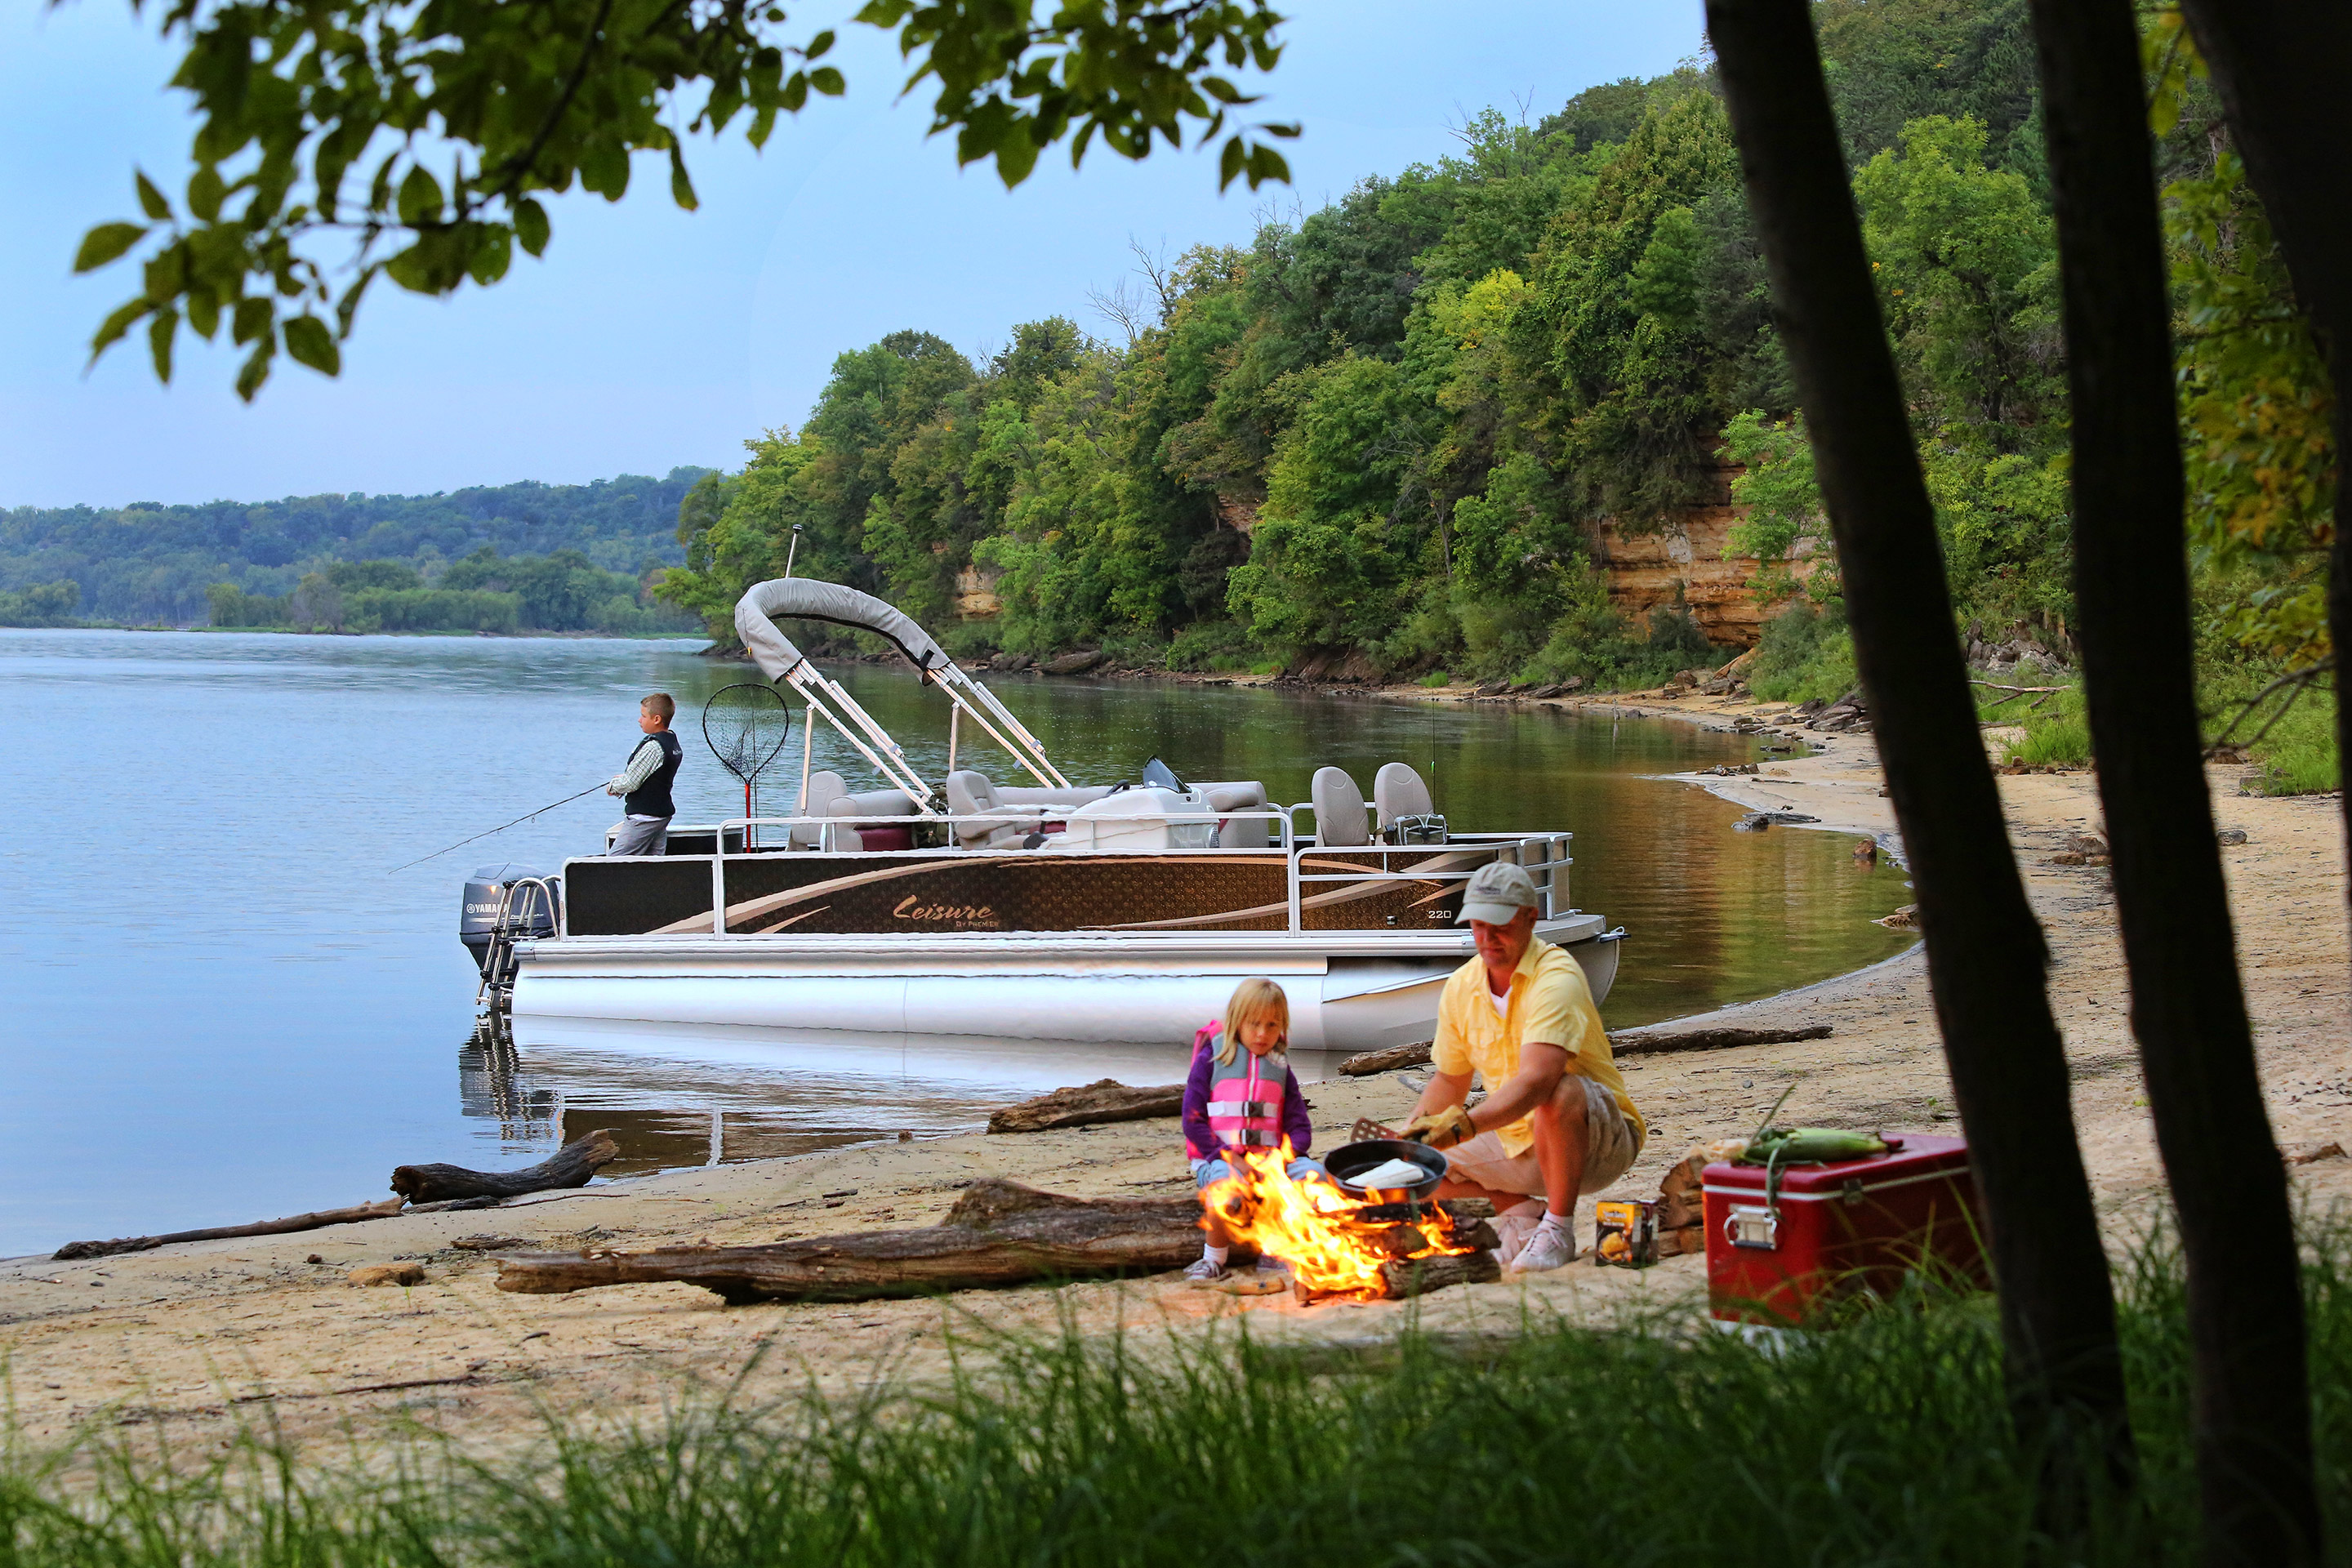 Premier Pontoons, Leisure 220NAV, St. Croix River, Stillwater, MInnesota. Father with kids fishing and cooking fish. Coleman cooler, fire, beach, cliff, bluff